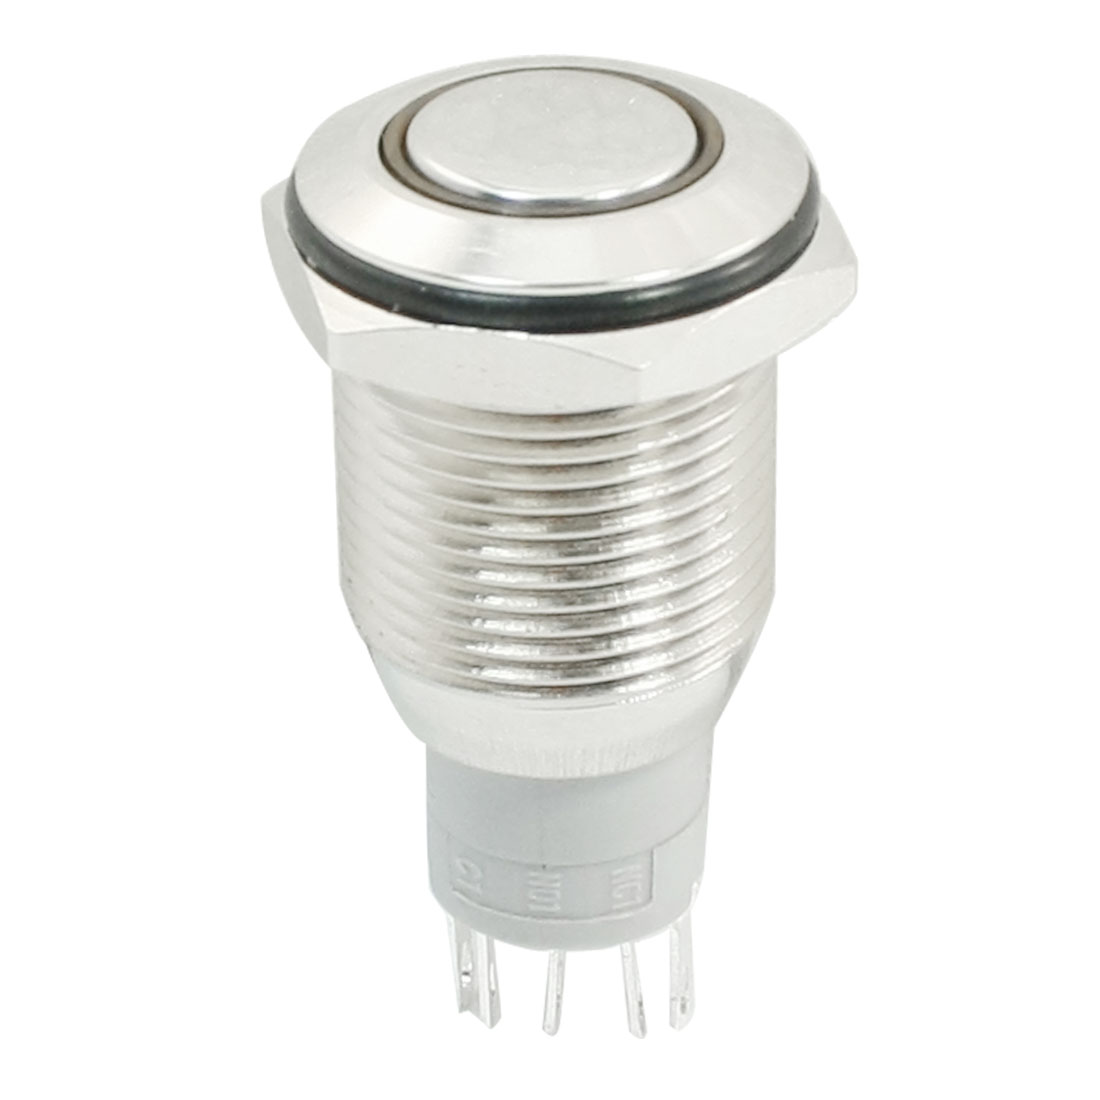 24V Red LED Lamp 5Pin SPDT Latching 16mm Mounting Pushbutton Switch